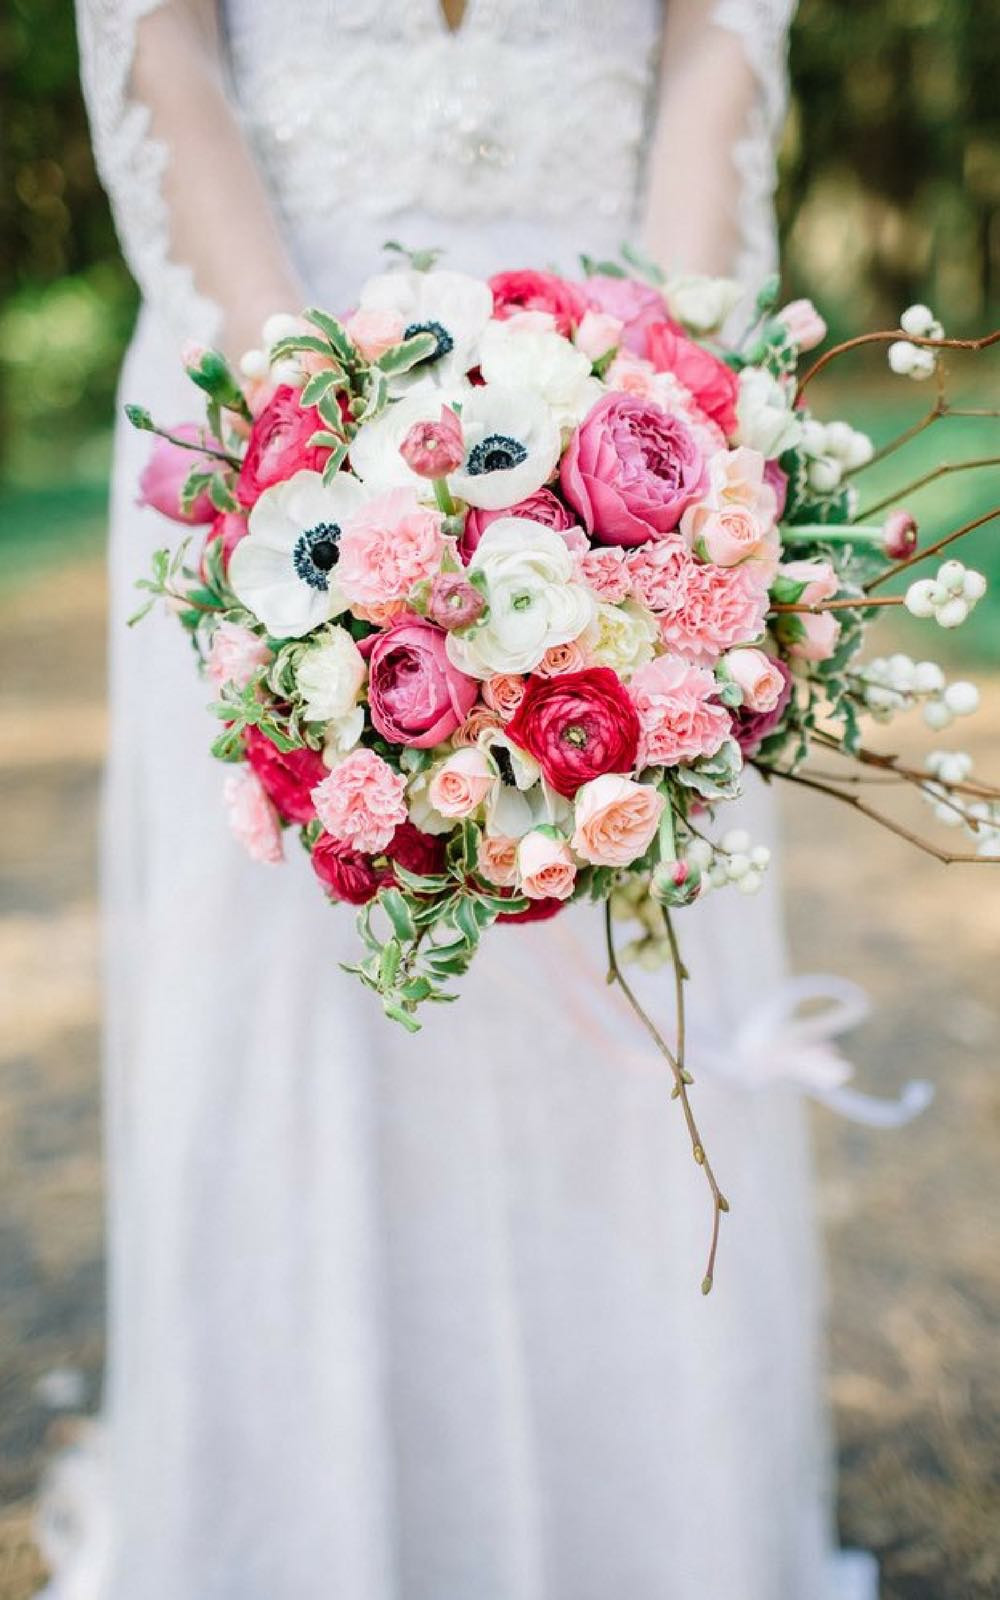 Best ideas about DIY Flowers For Wedding . Save or Pin Fifty Flowers Review How I Did My Own Wedding Flowers Now.